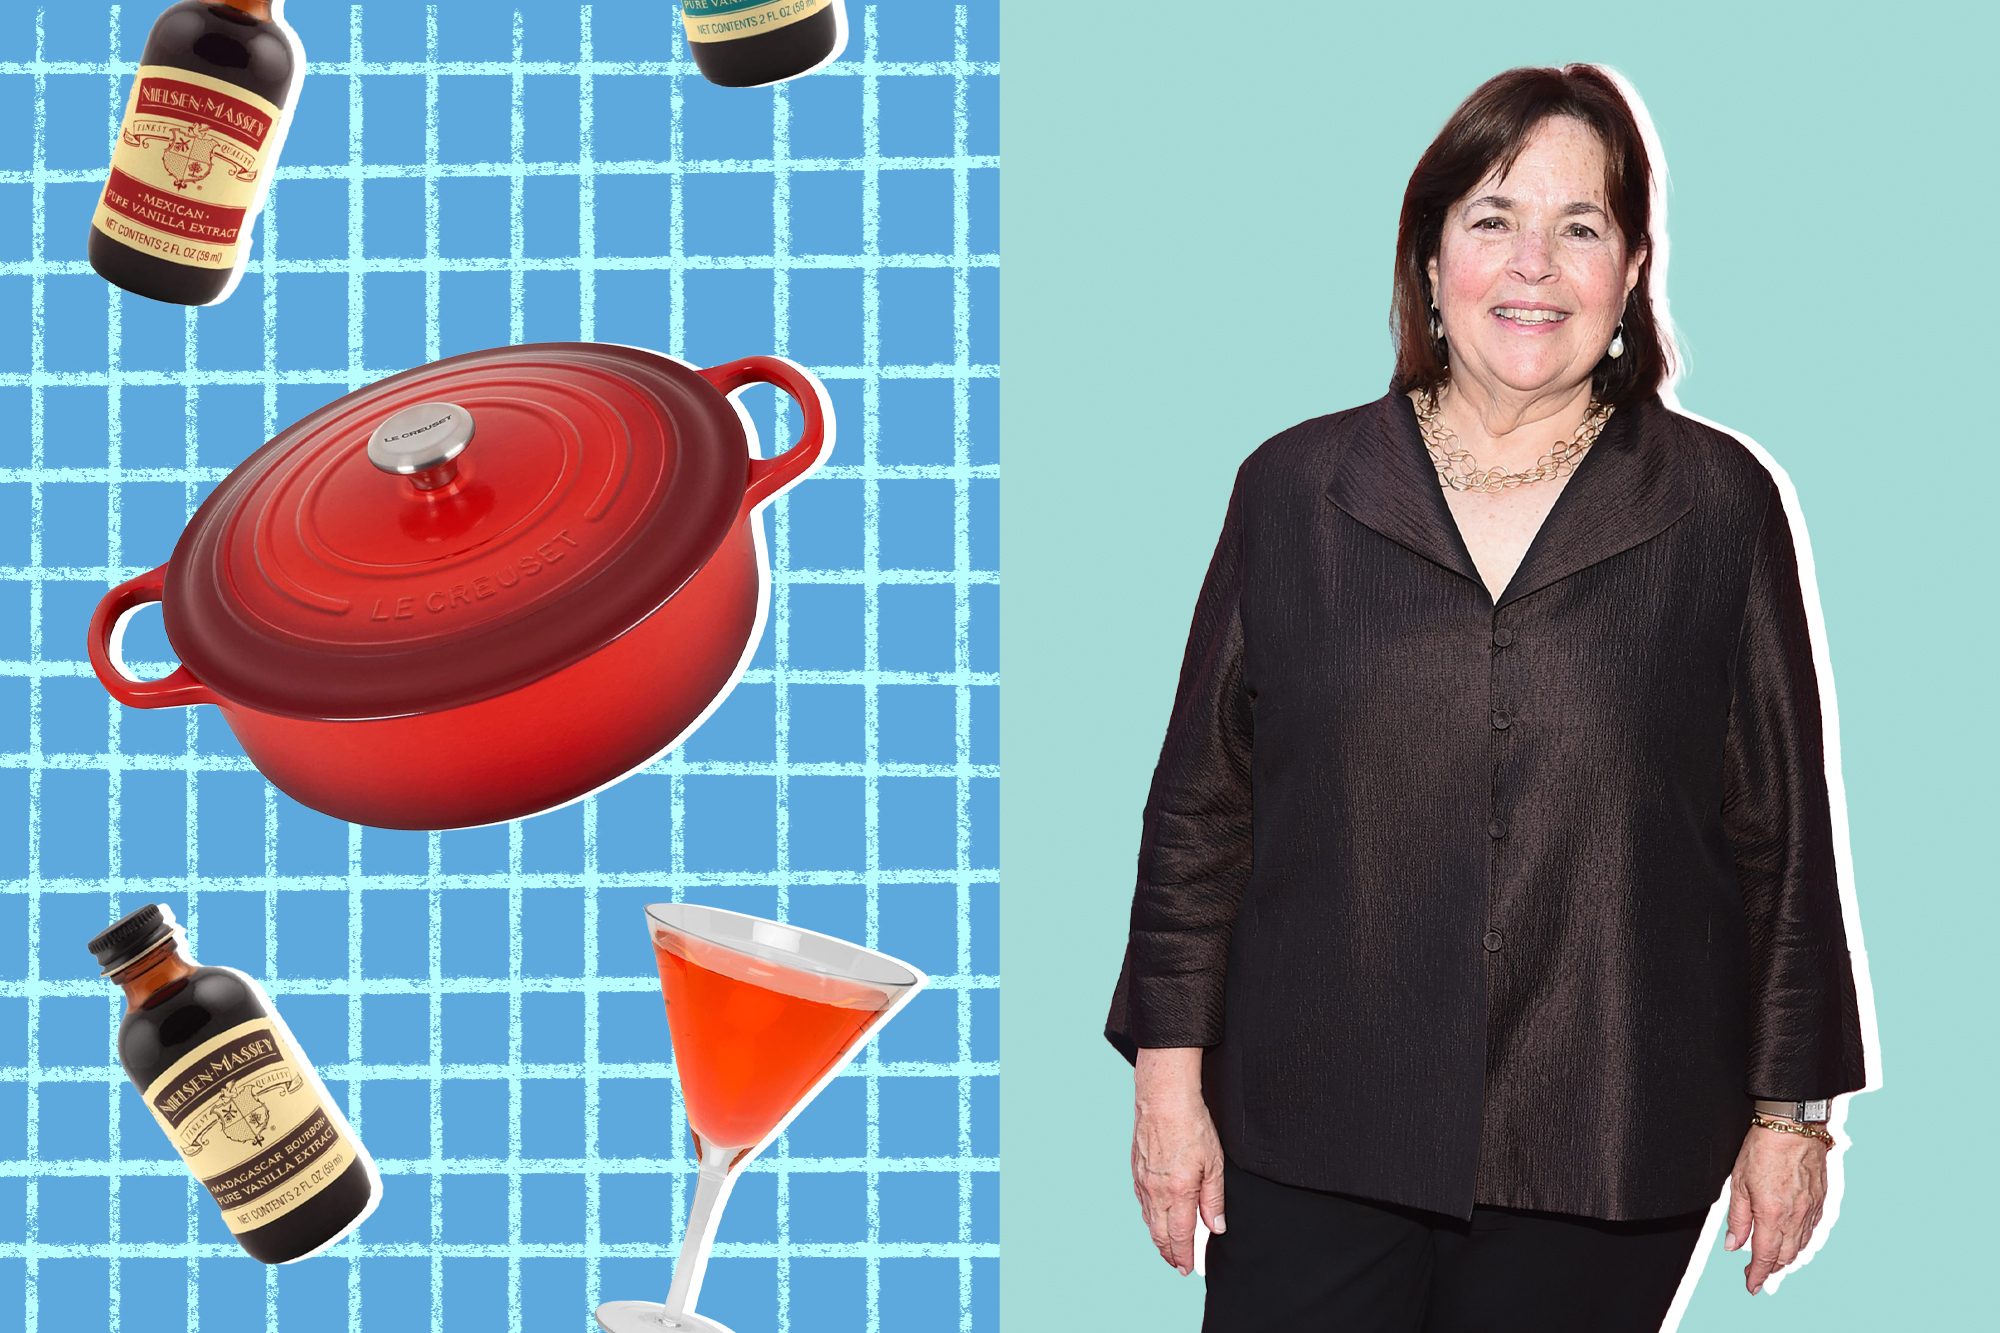 Ina Garten and a selection of mother's day gifts on a designed background